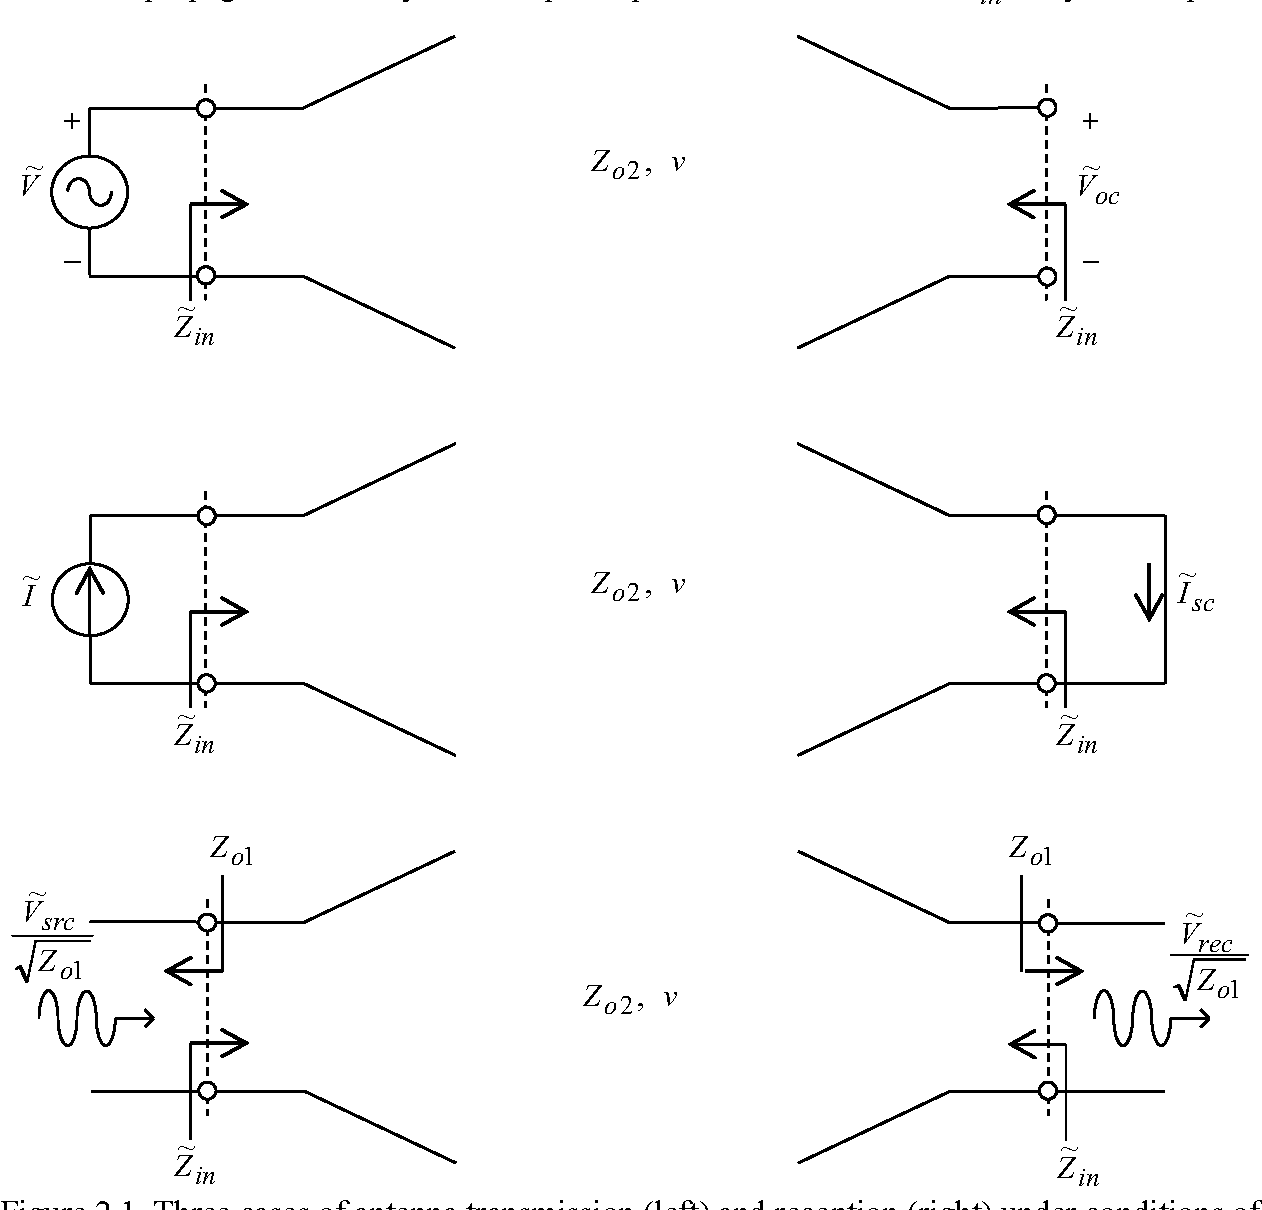 Figure 2 1 from A Power Wave Theory of Antennas (fourth